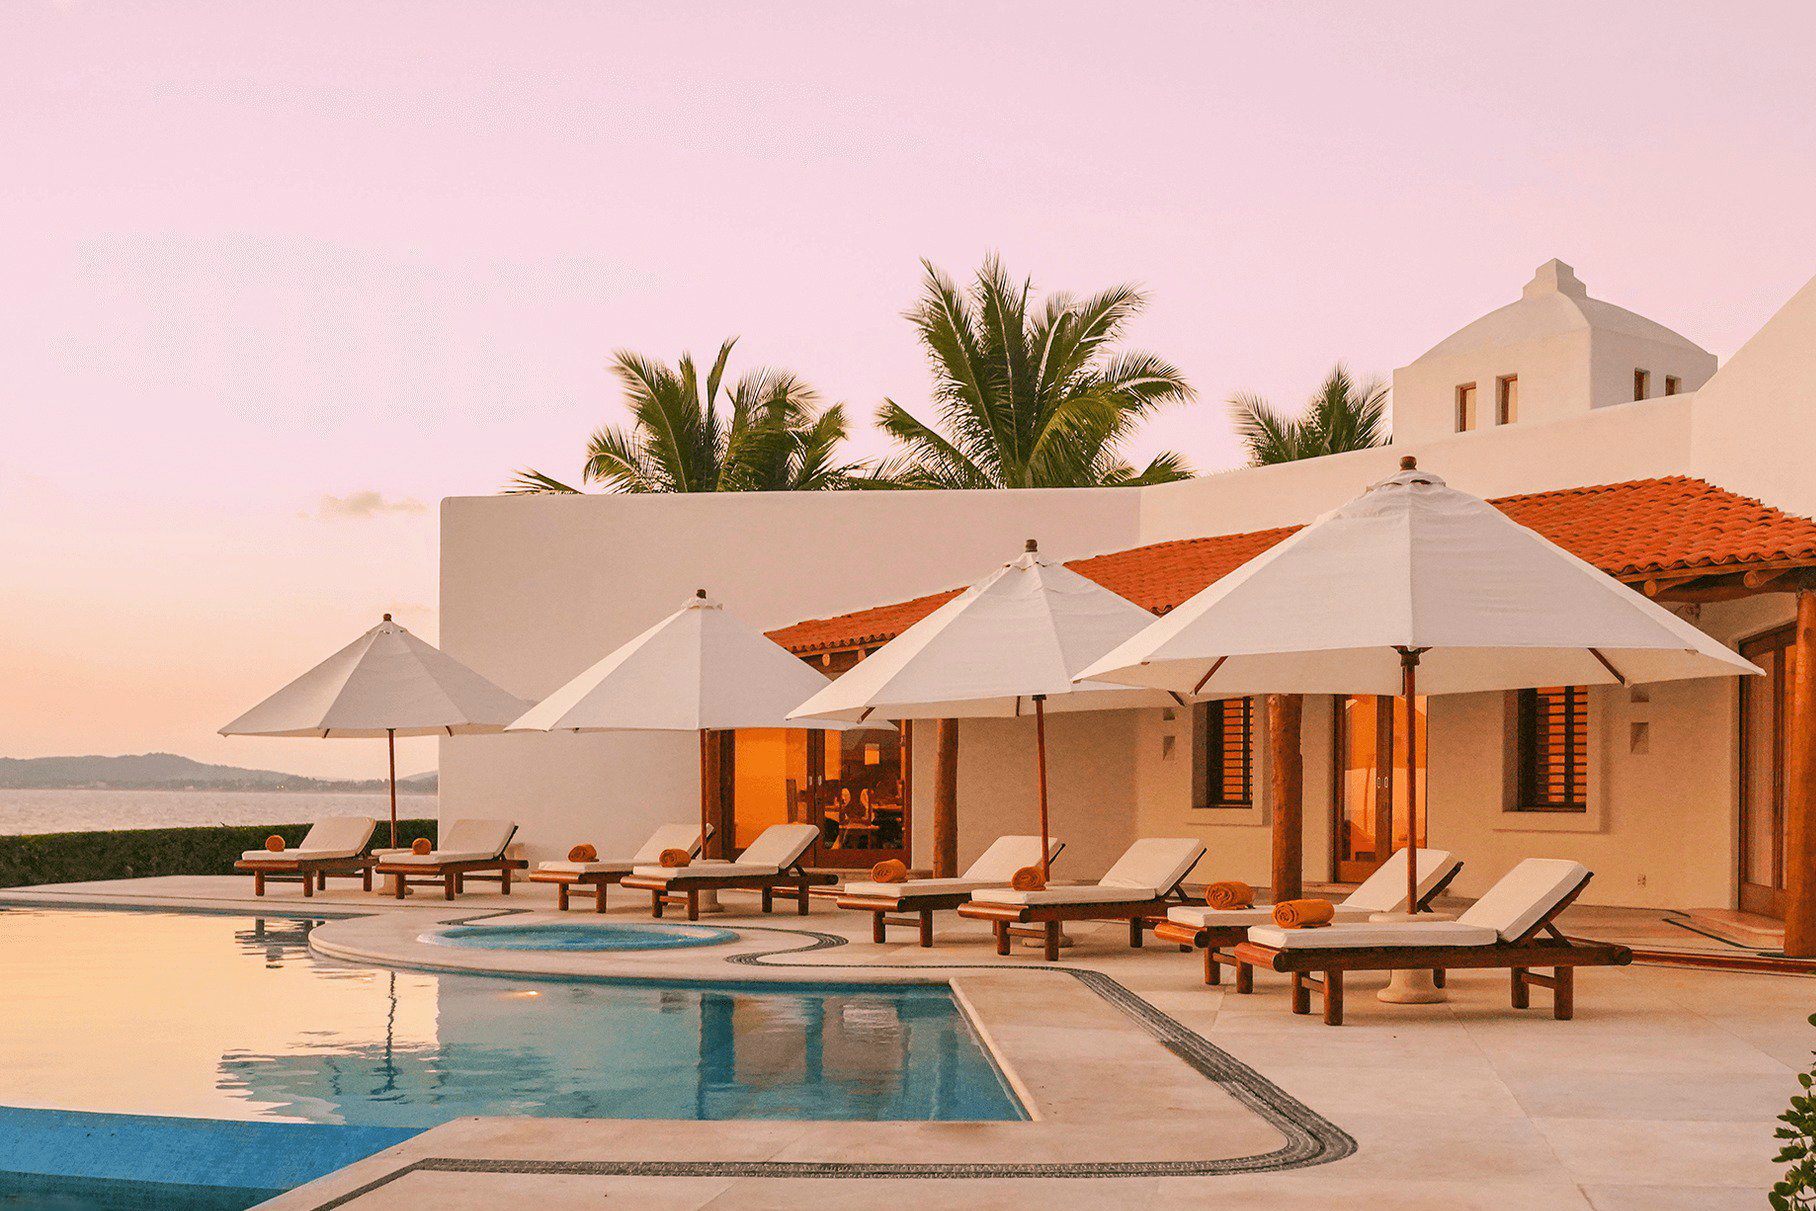 Playa Nix on the Costa Alegre, Mexico: the essence of truly getting away to unwind and recharge